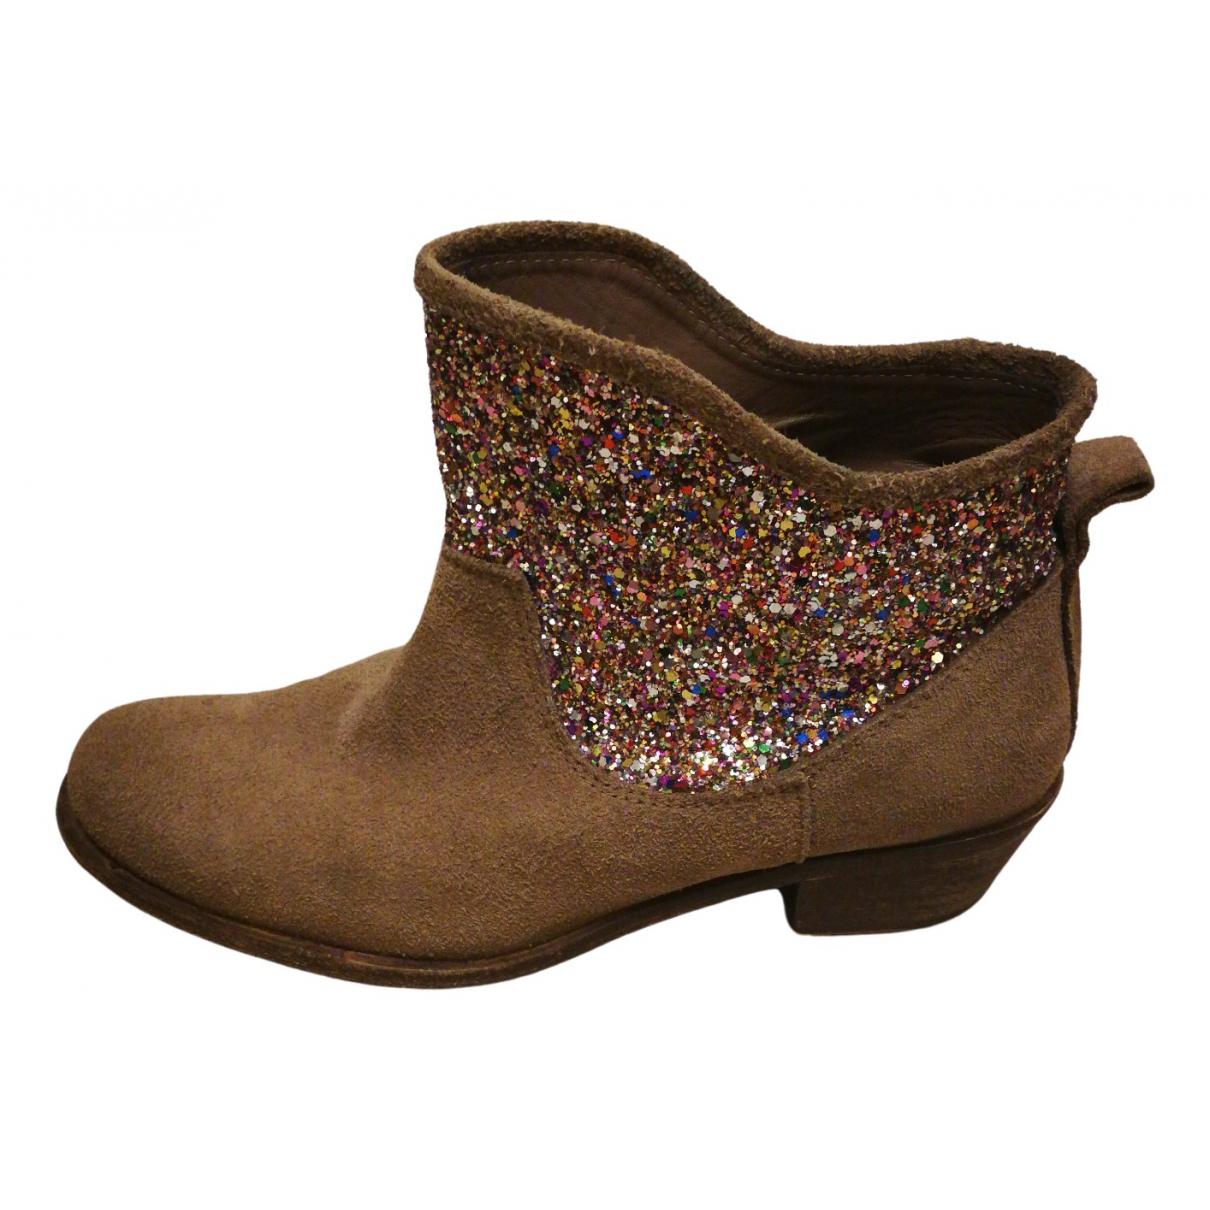 Hoss Intropia \N Beige Leather Ankle boots for Women 38 EU